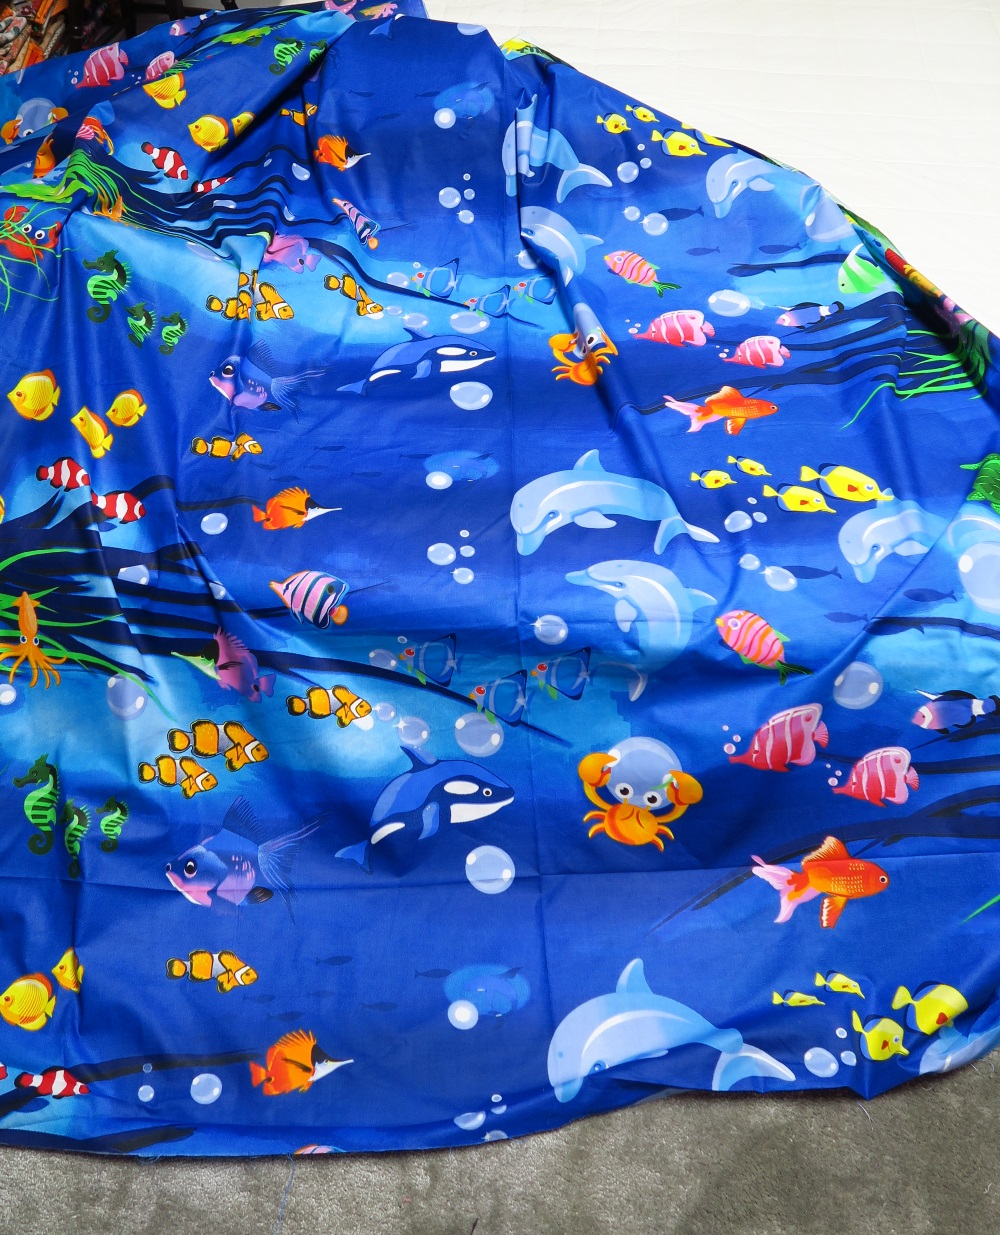 blue fabric with underwater sea design on it with a variety of fish and dolphins